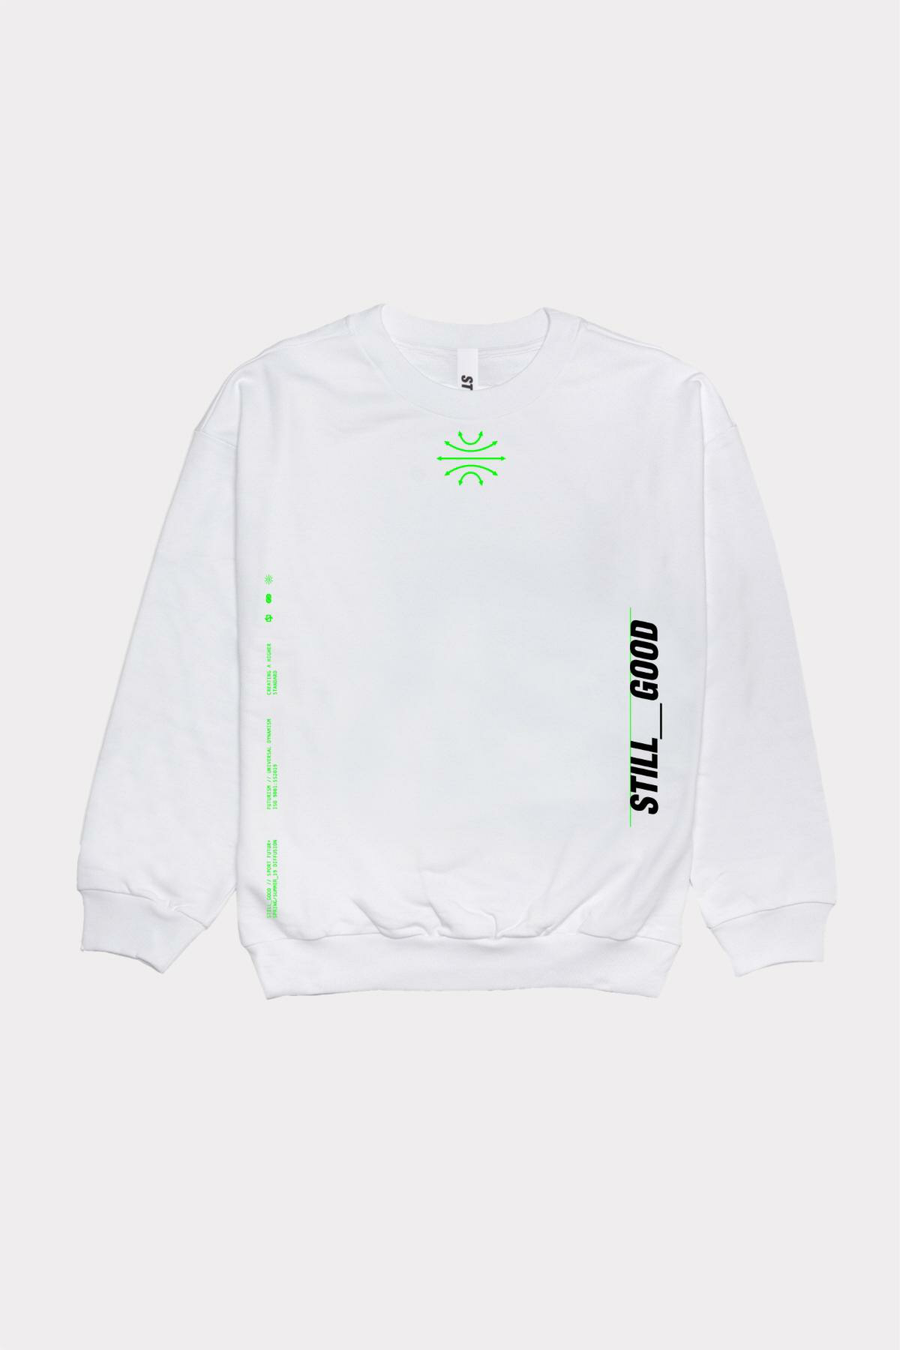 Global V2 Crewneck White / XS | Still Good